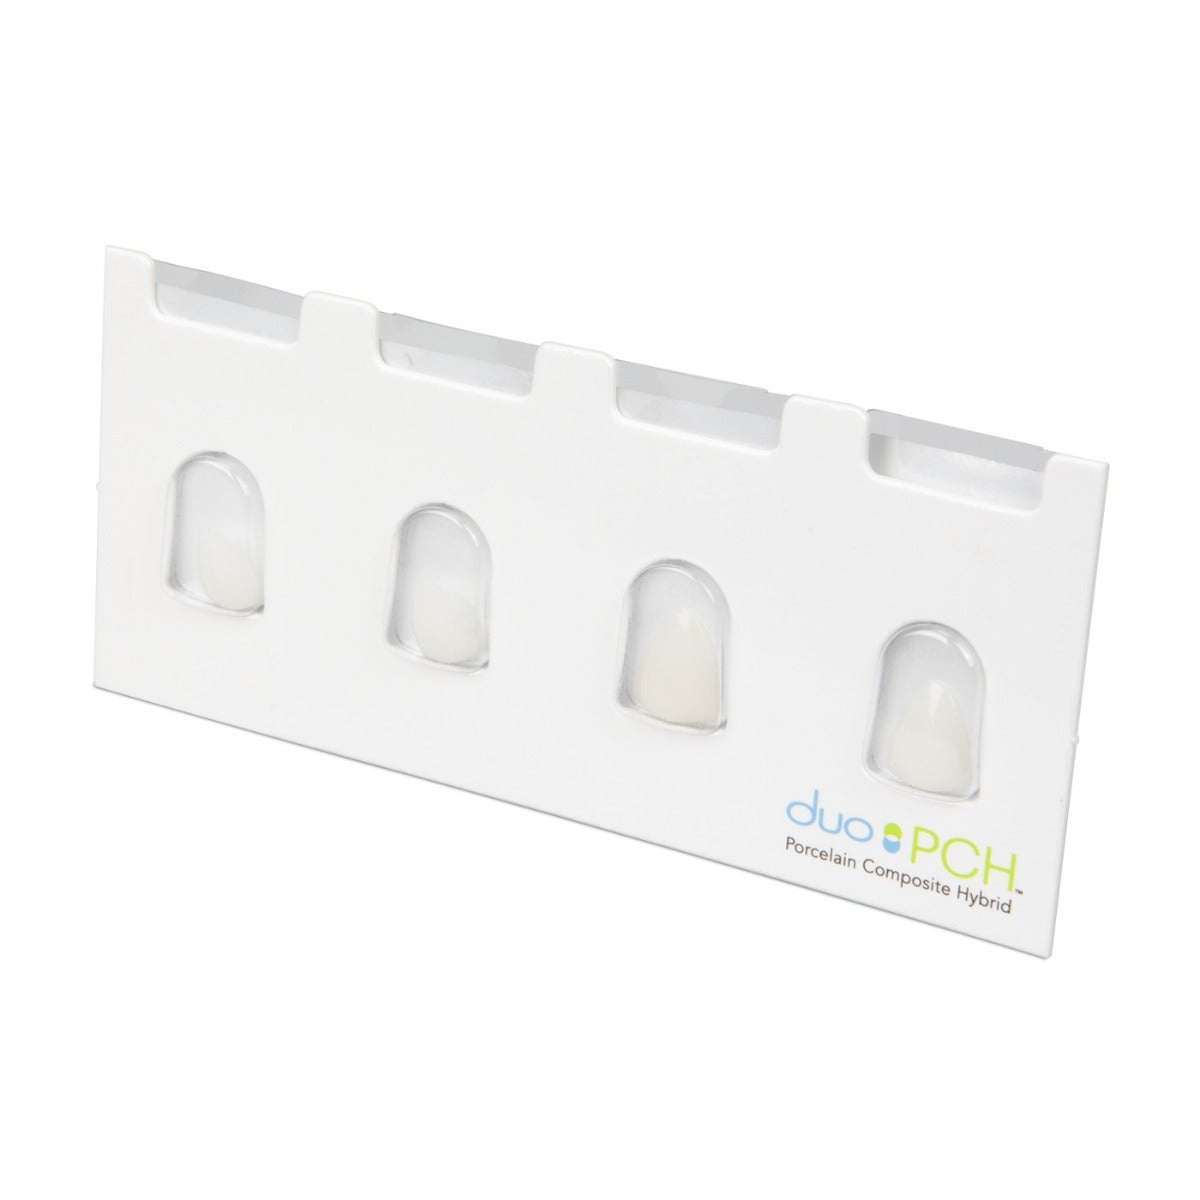 Duo PCH - Extra Small Uppers Universal Bicuspids - B1 Standard Translucency